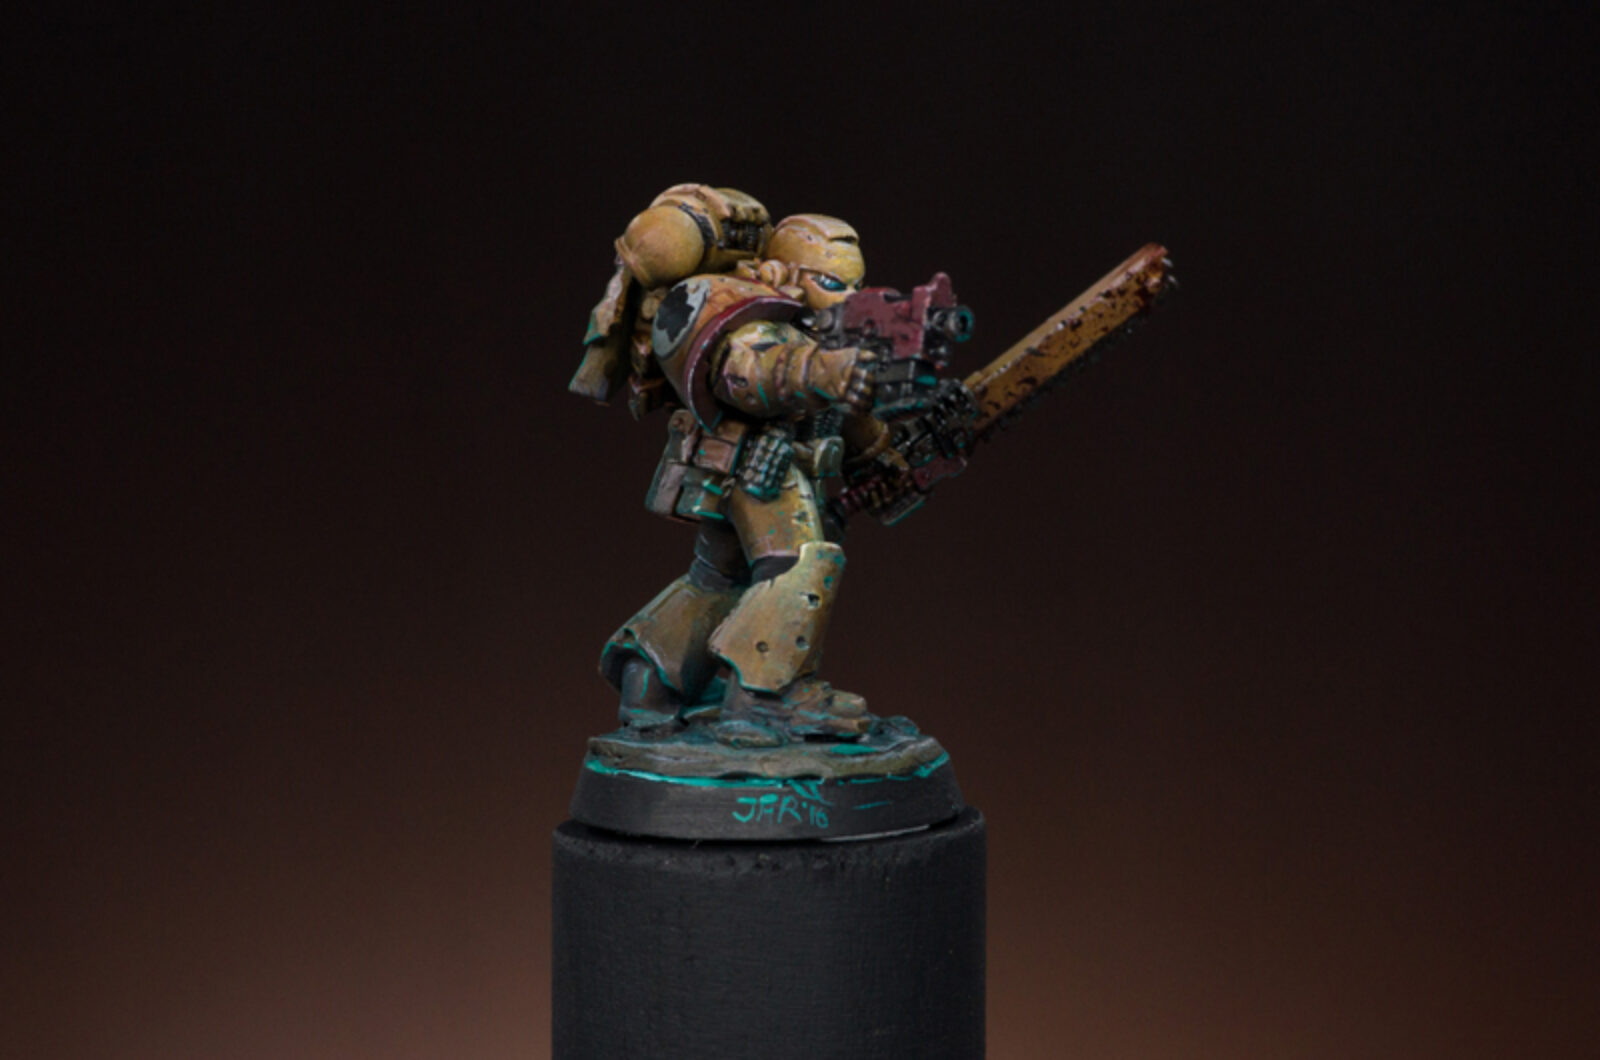 Imperial Fist06